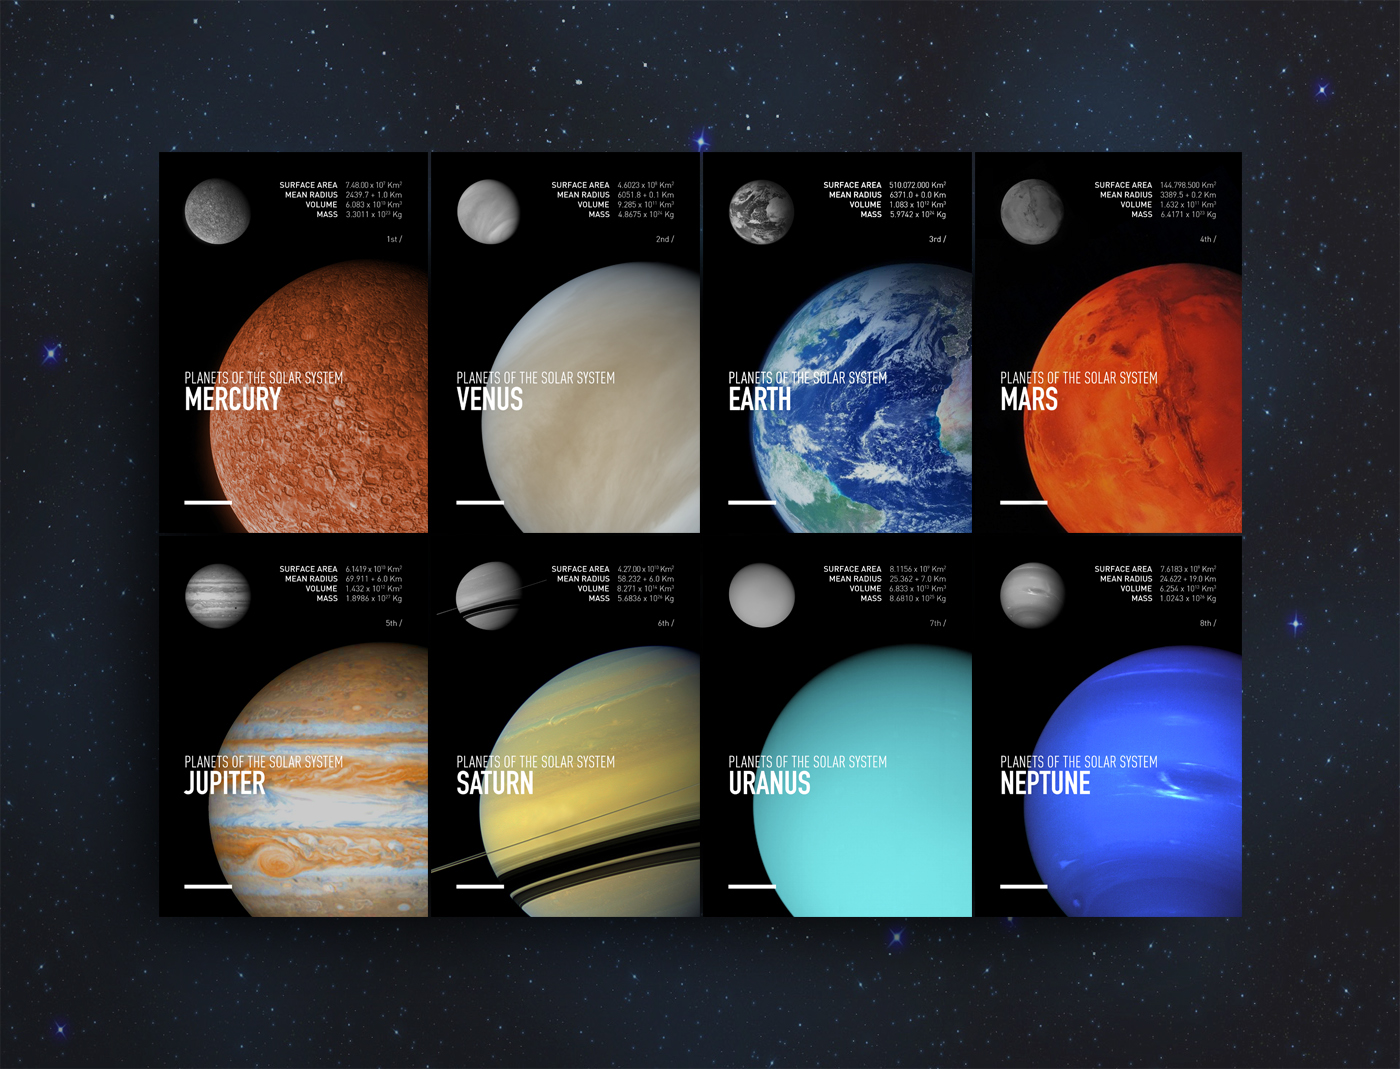 a report on the planets of the solar system It is the second largest planet in the solar system having a radius 9 times that of earth (57,000 km) and a mass 95 times that of earth saturn orbits the sun once very 29 years (at about 1400 million km) and is mainly comprised of gas (96% hydrogen and 3% helium) and is presumed to have a rocky core surrounded by a sea of liquid metallic hydrogen.